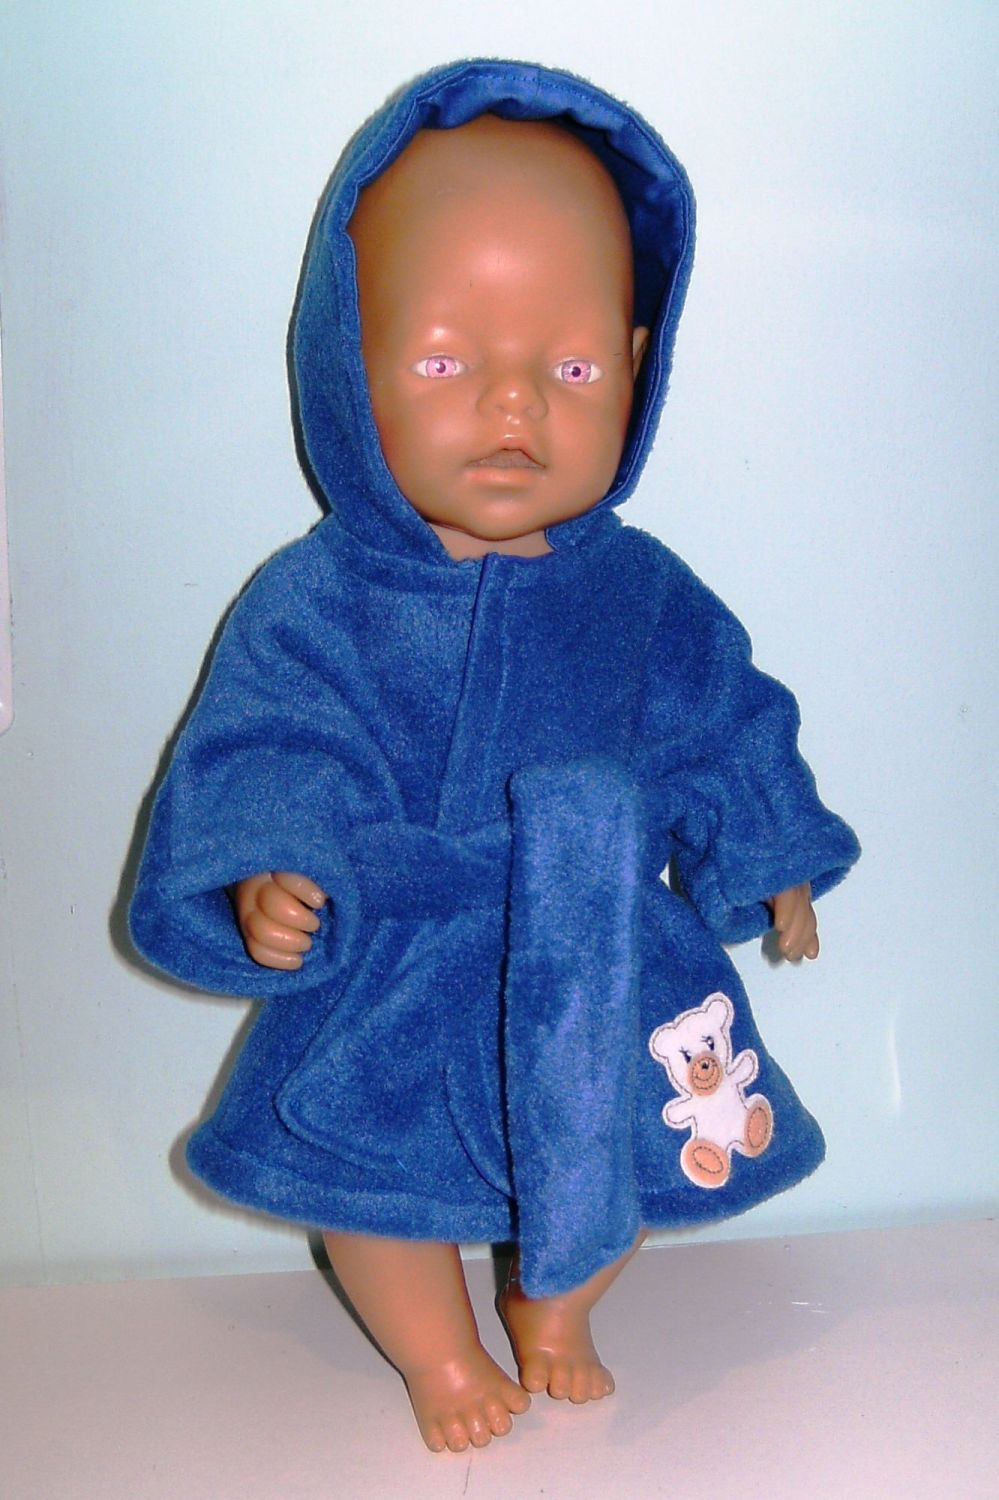 Doll's bathrobe made for Baby Born Boy